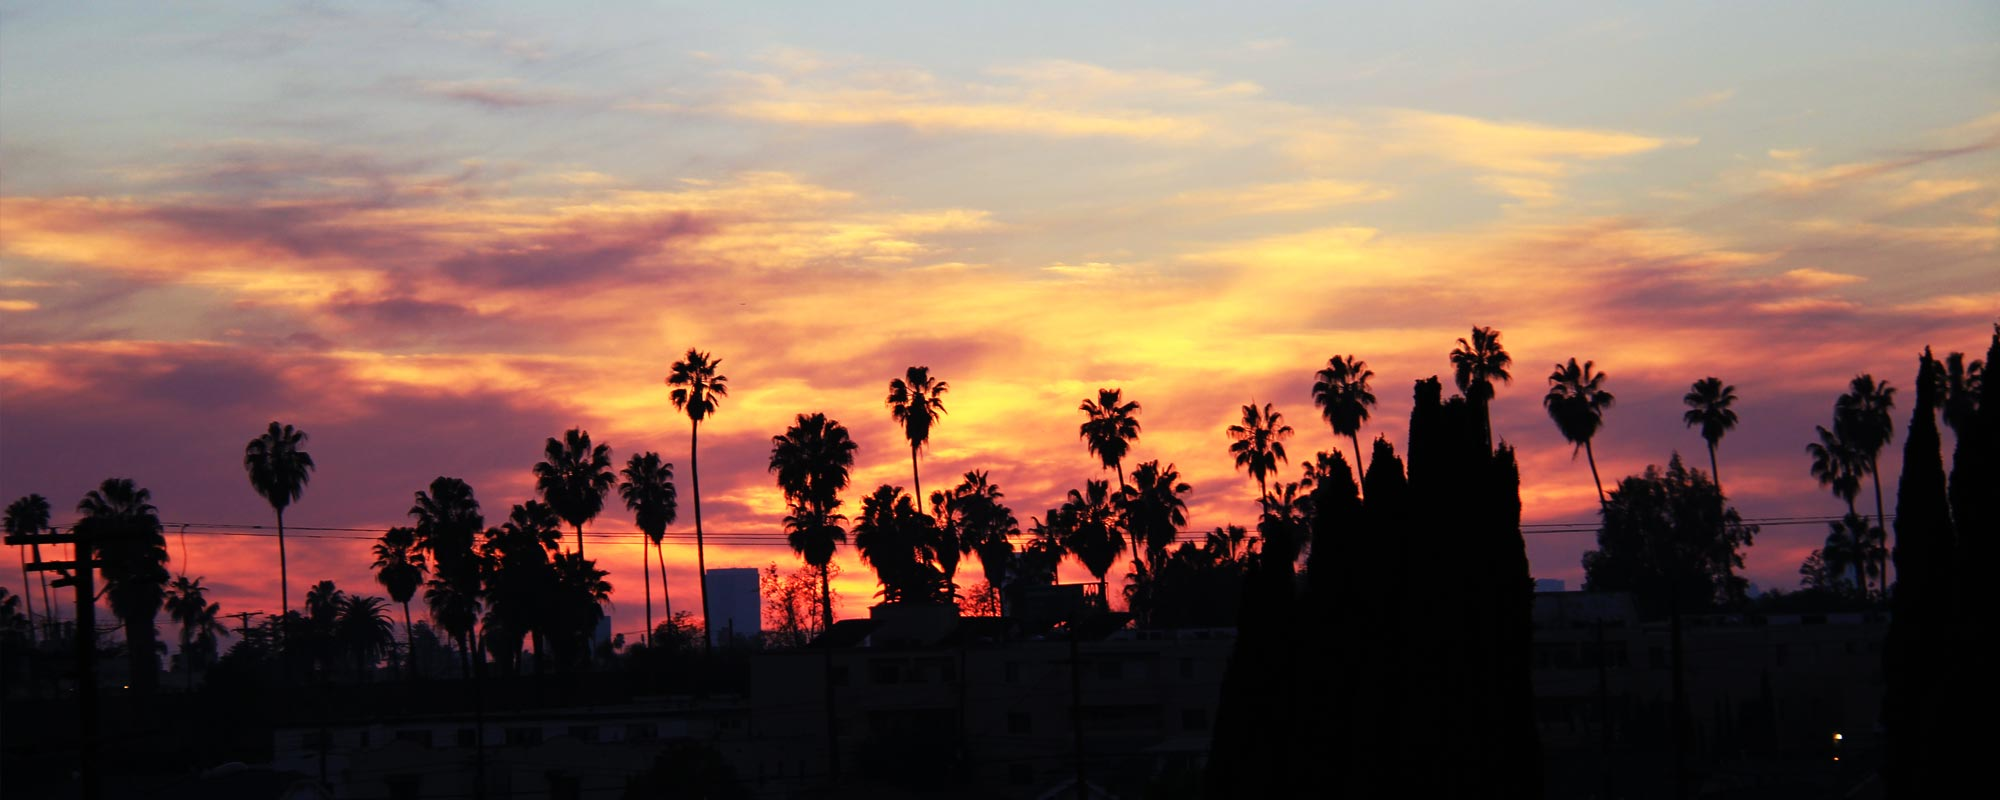 Palm trees silhouetted against a brilliant LA sunset